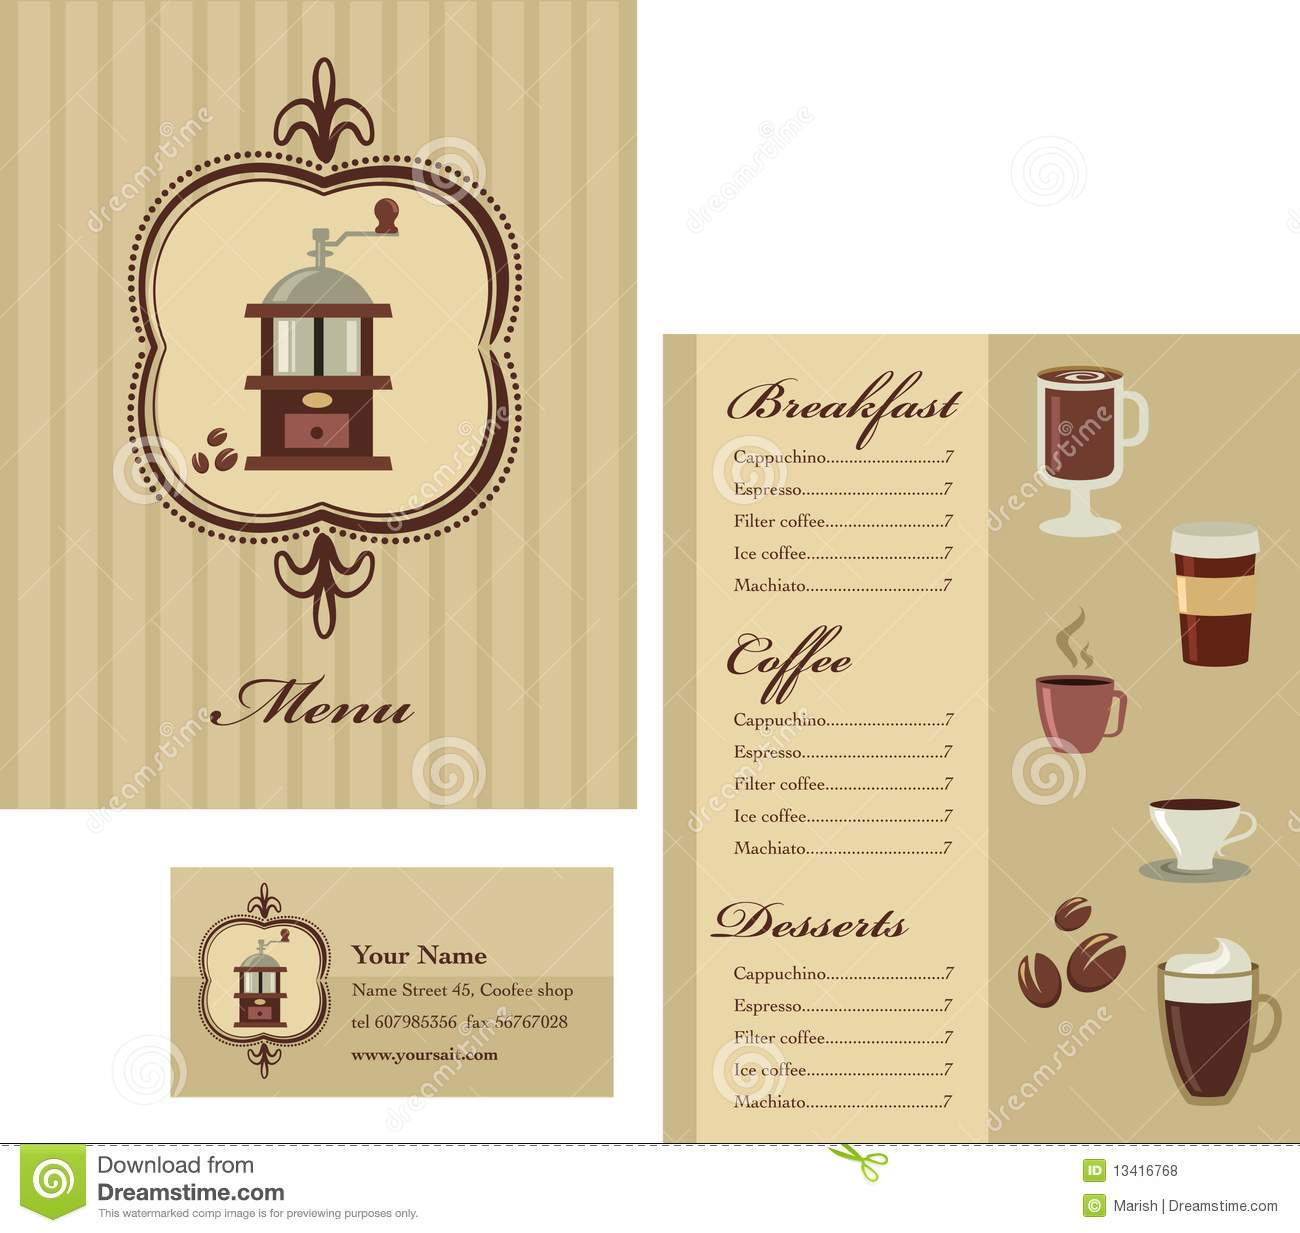 Menu and business card template design coffee stock vector menu and business card template design coffee fbccfo Choice Image